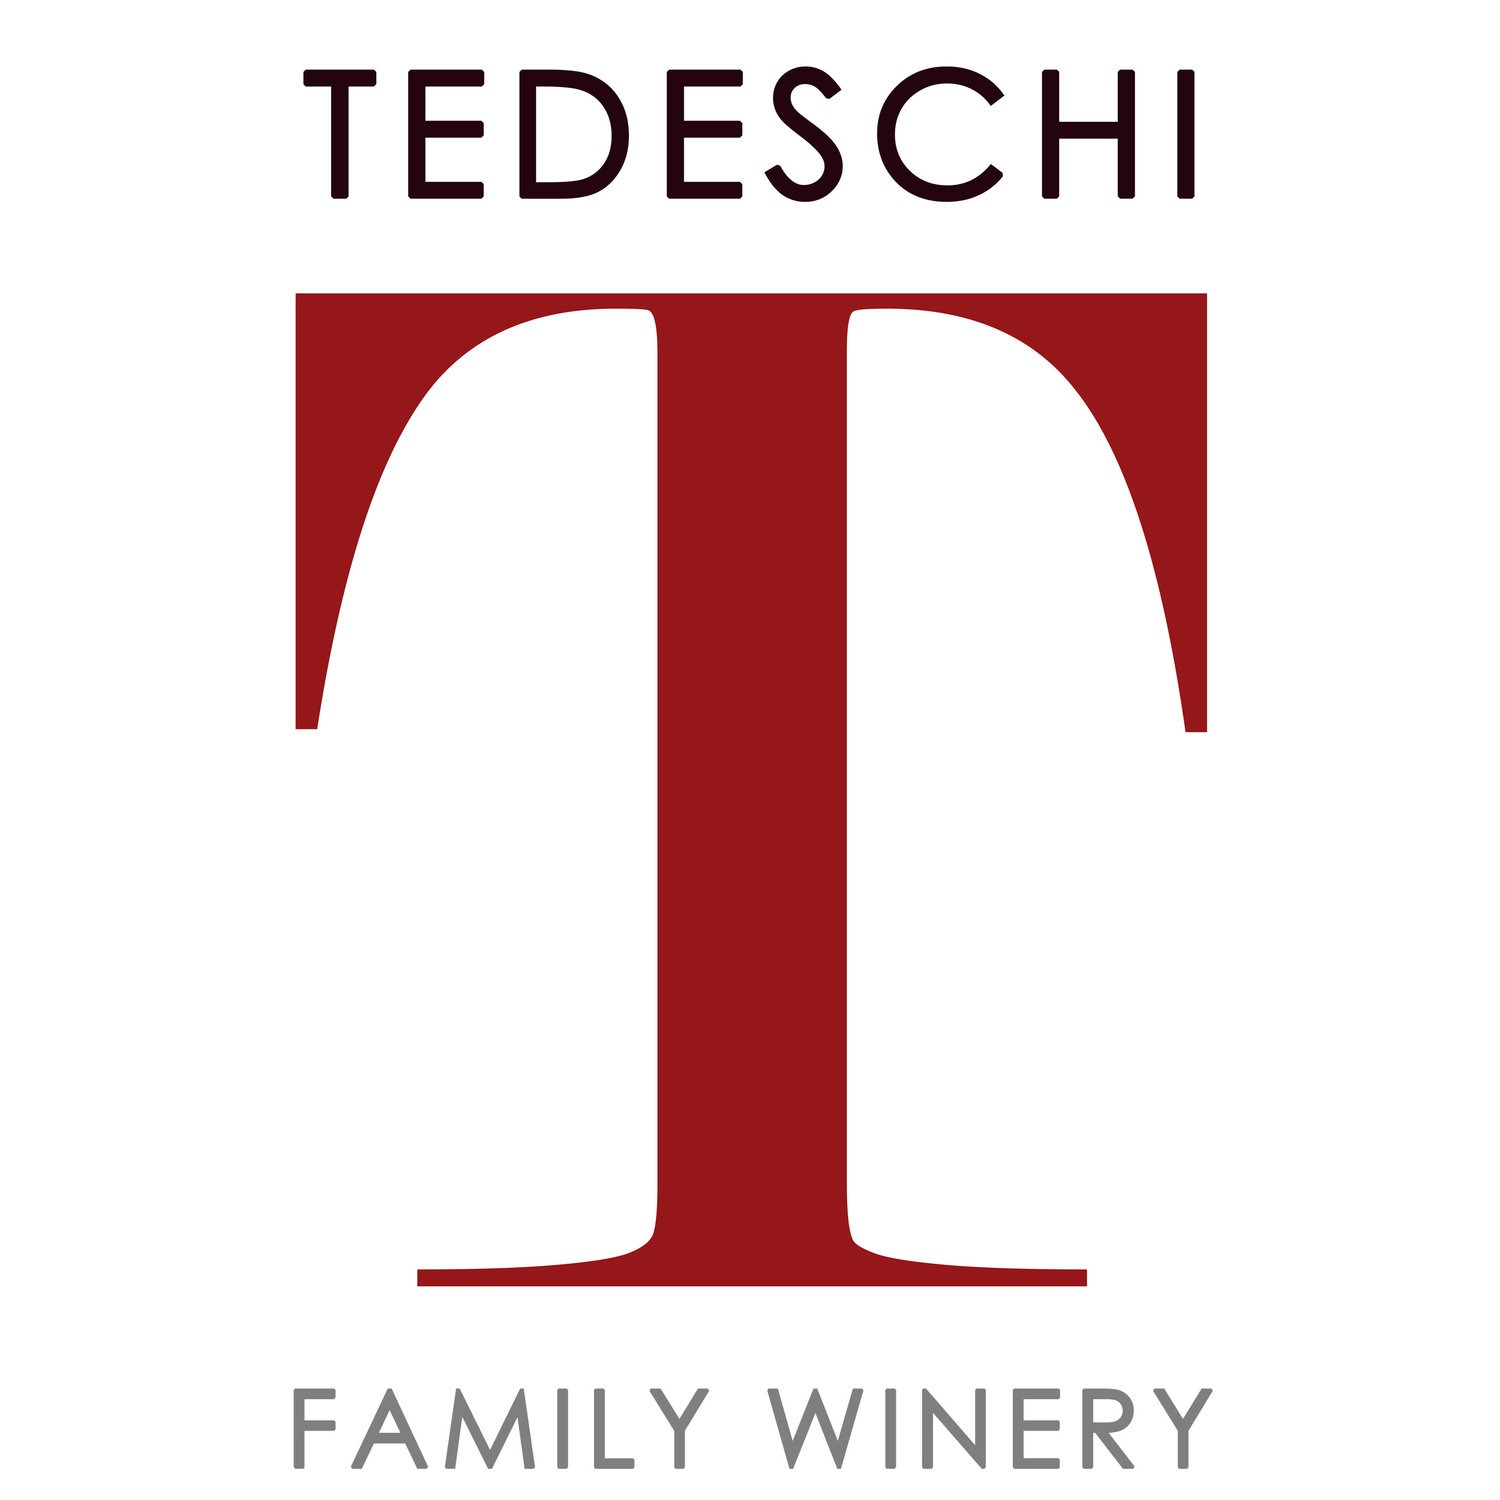 Tedeschi Family Winery logo